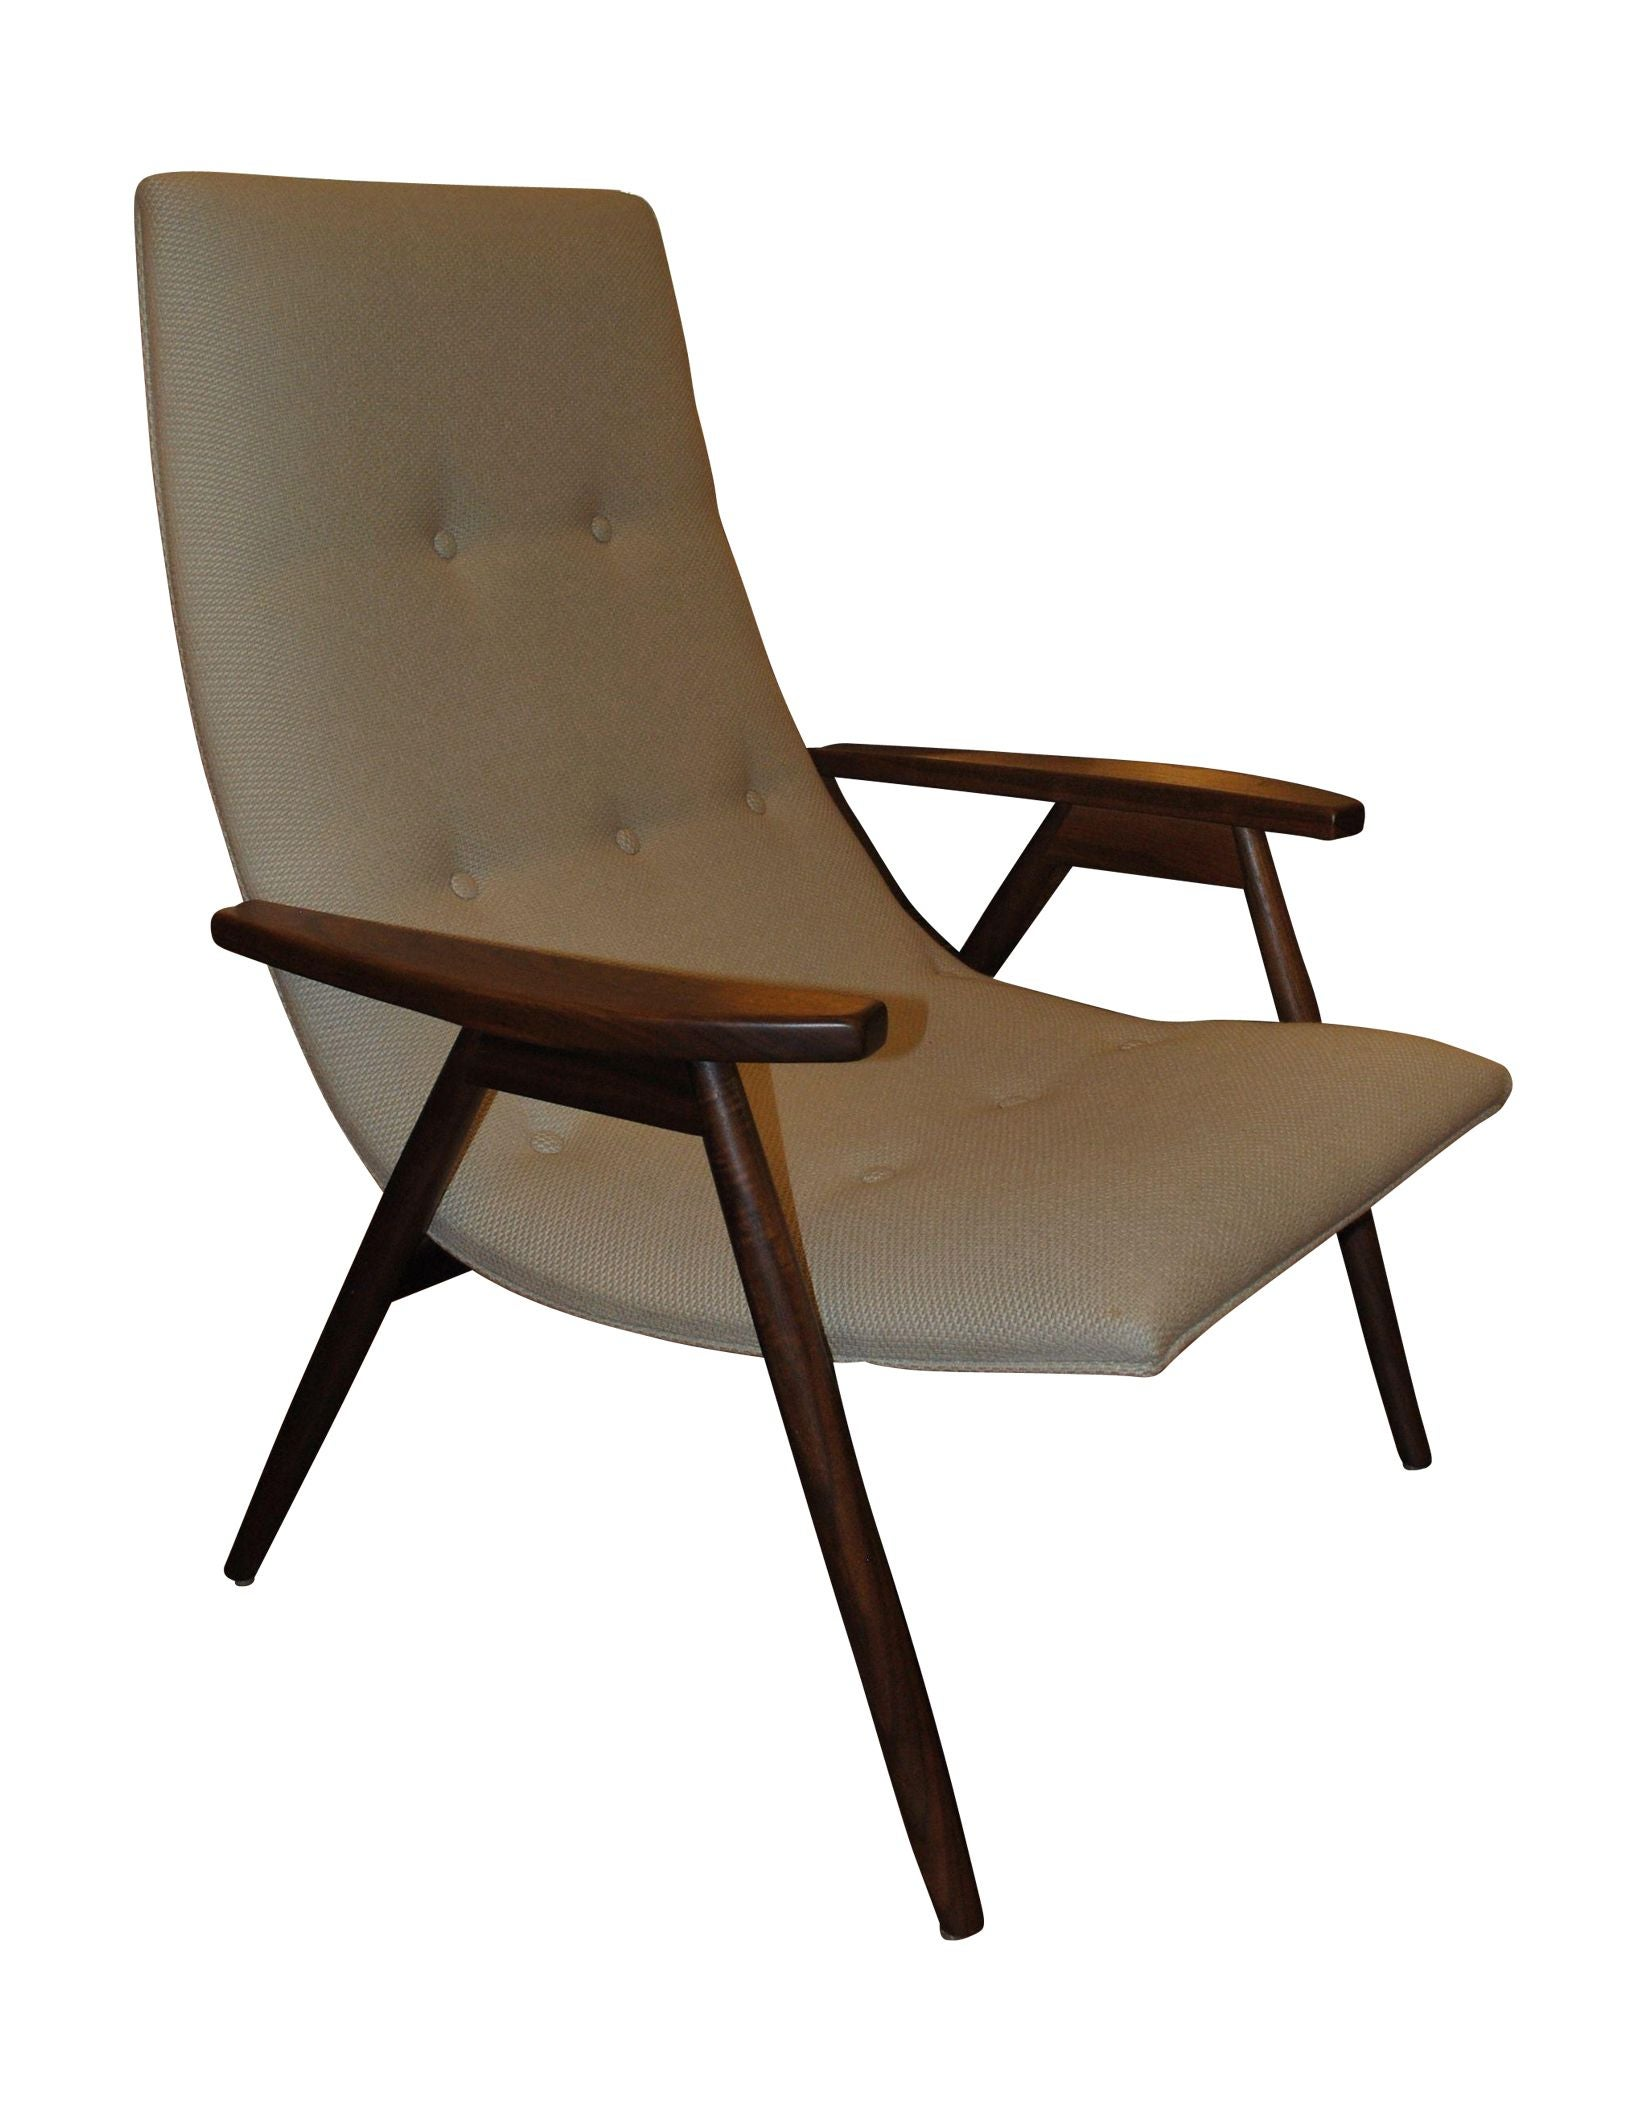 Ordinaire Alan Gould Eggshell Chair For Thayer Coggin For Sale